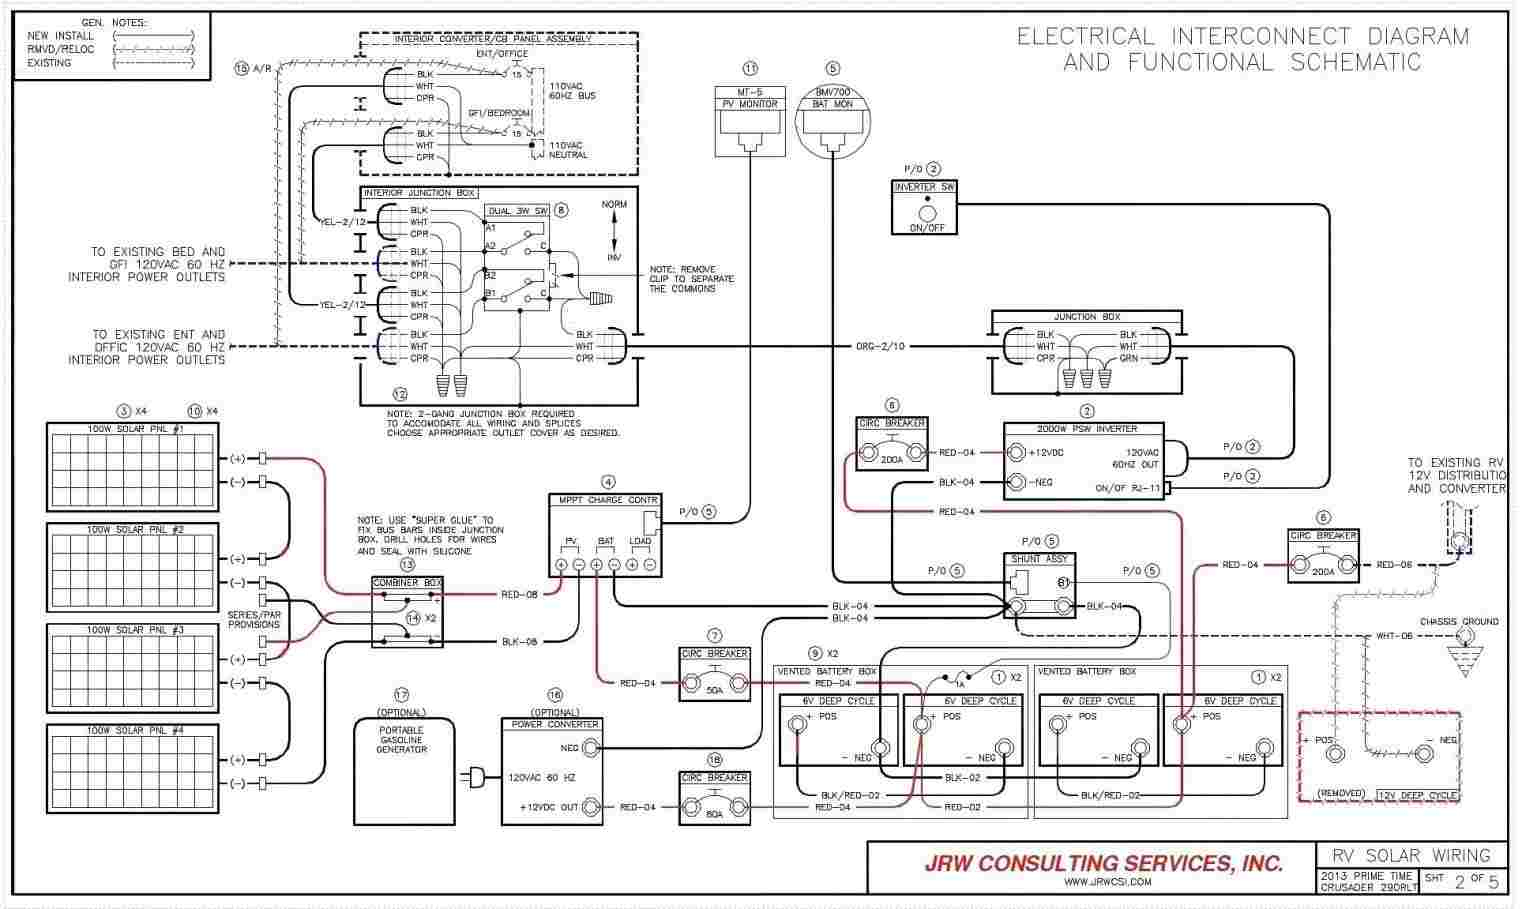 Wilderness 24J Electrical Wiring Diagram | Manual E-Books - 99 Wilderness Travel Trailer Furnace Wiring Diagram